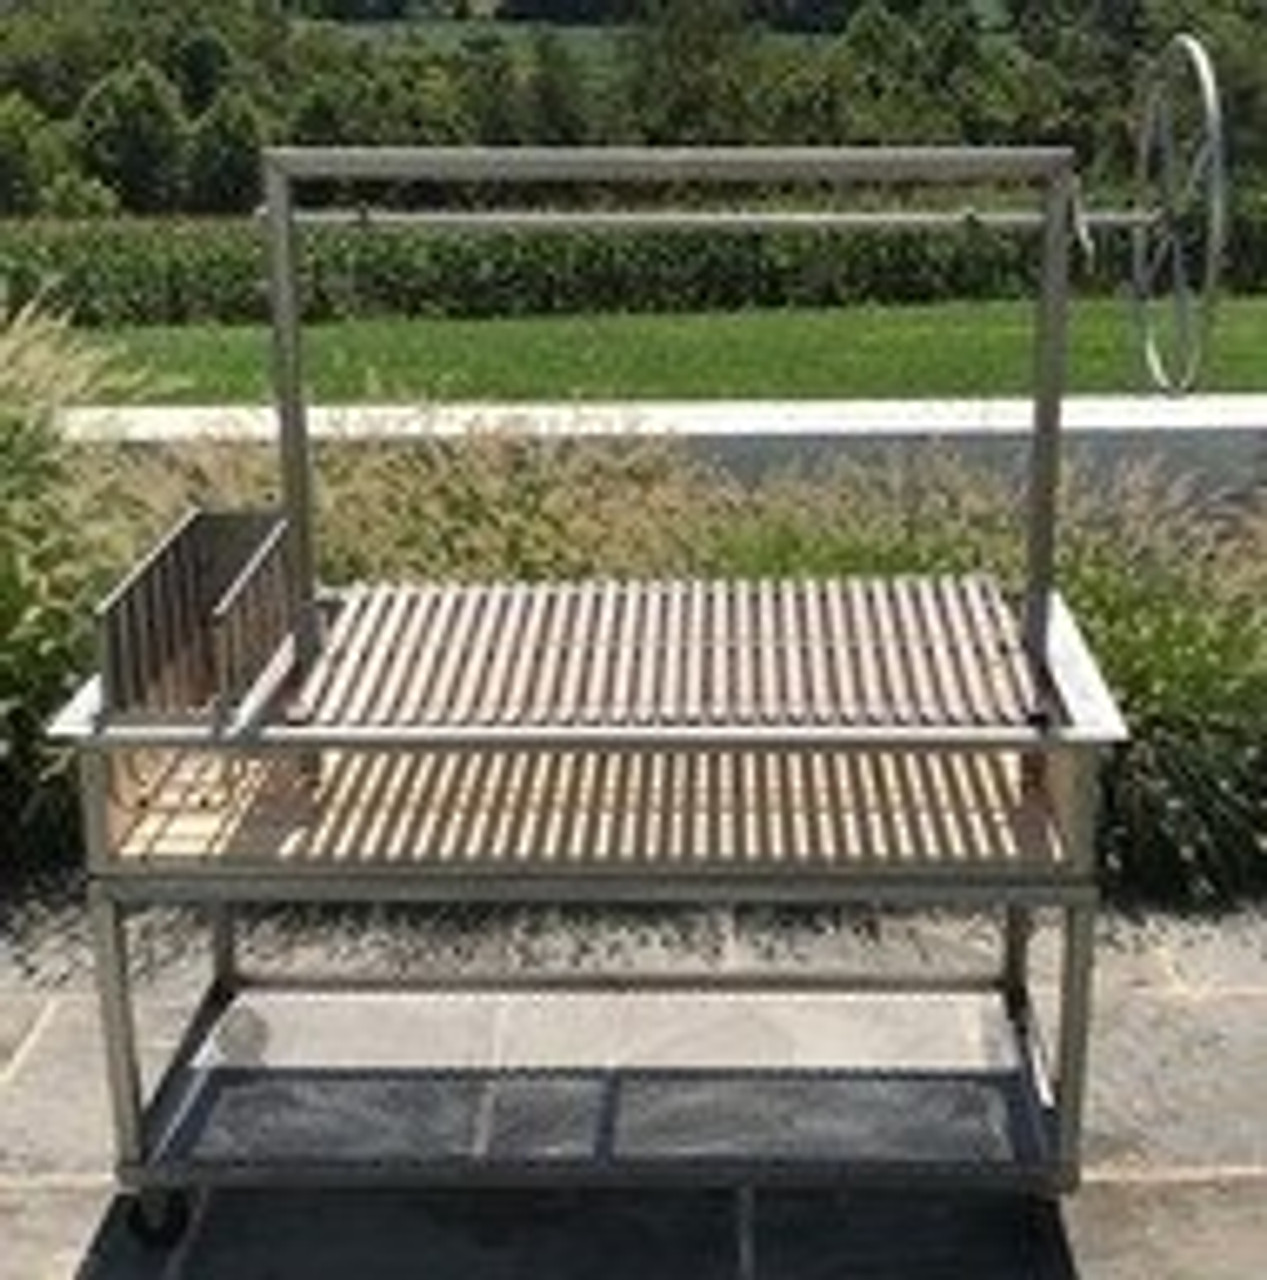 Stainless Steel Argentine Counter Drop in Grills with a Firebox and a Side Brasero  | Free Shipping*